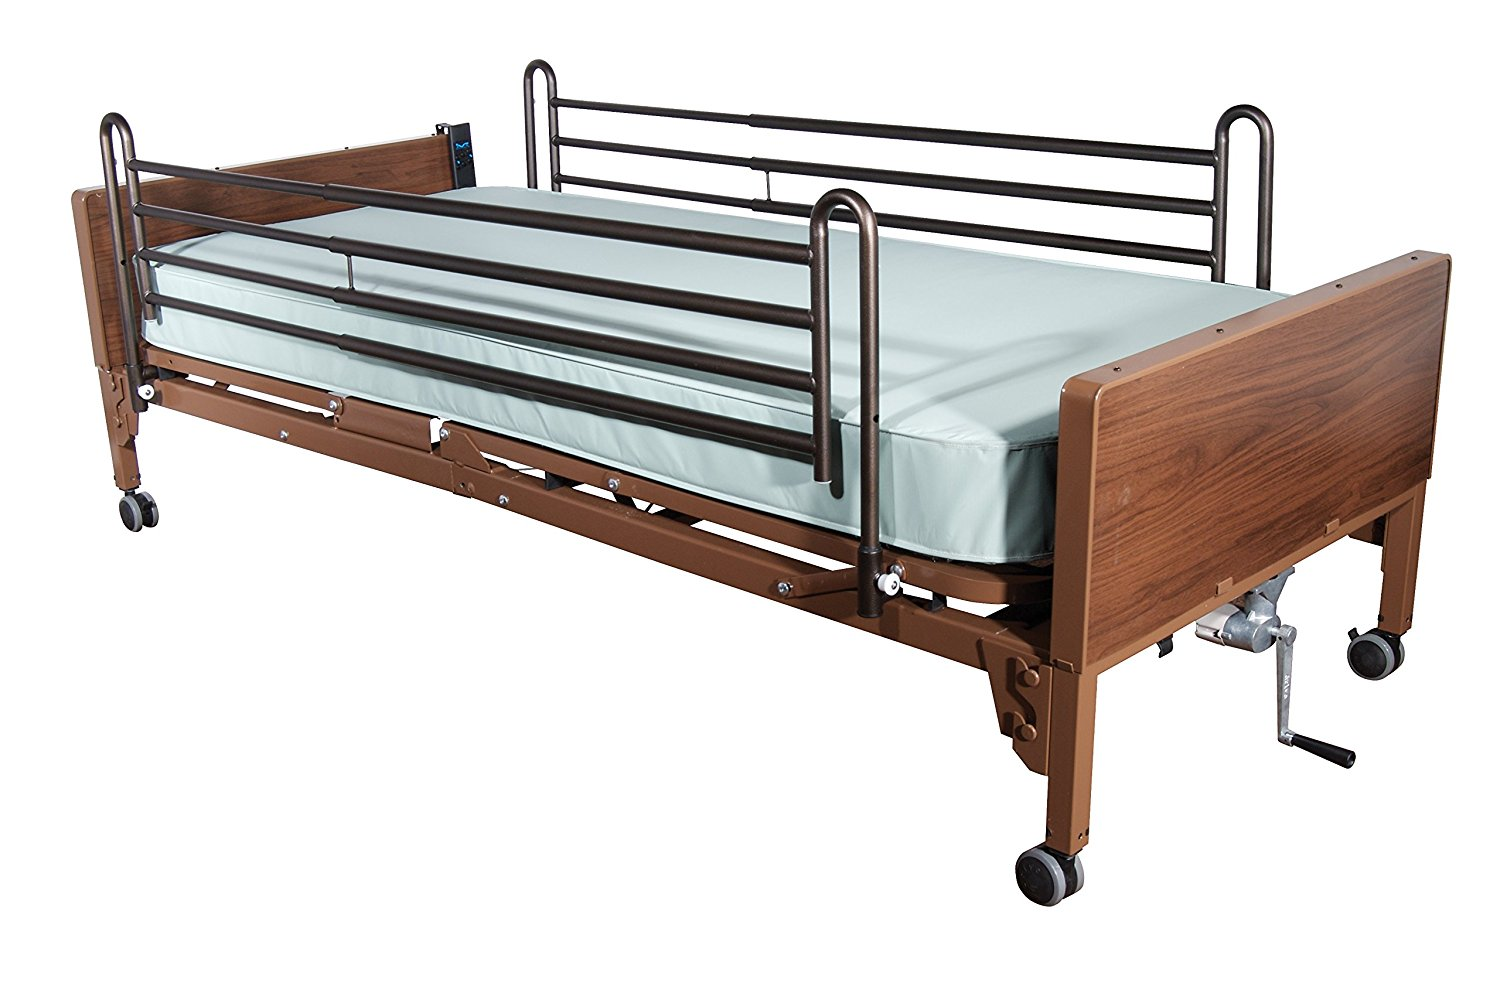 Delta Ultra-Light 1000 Full-Electric Bed by Drive Medical